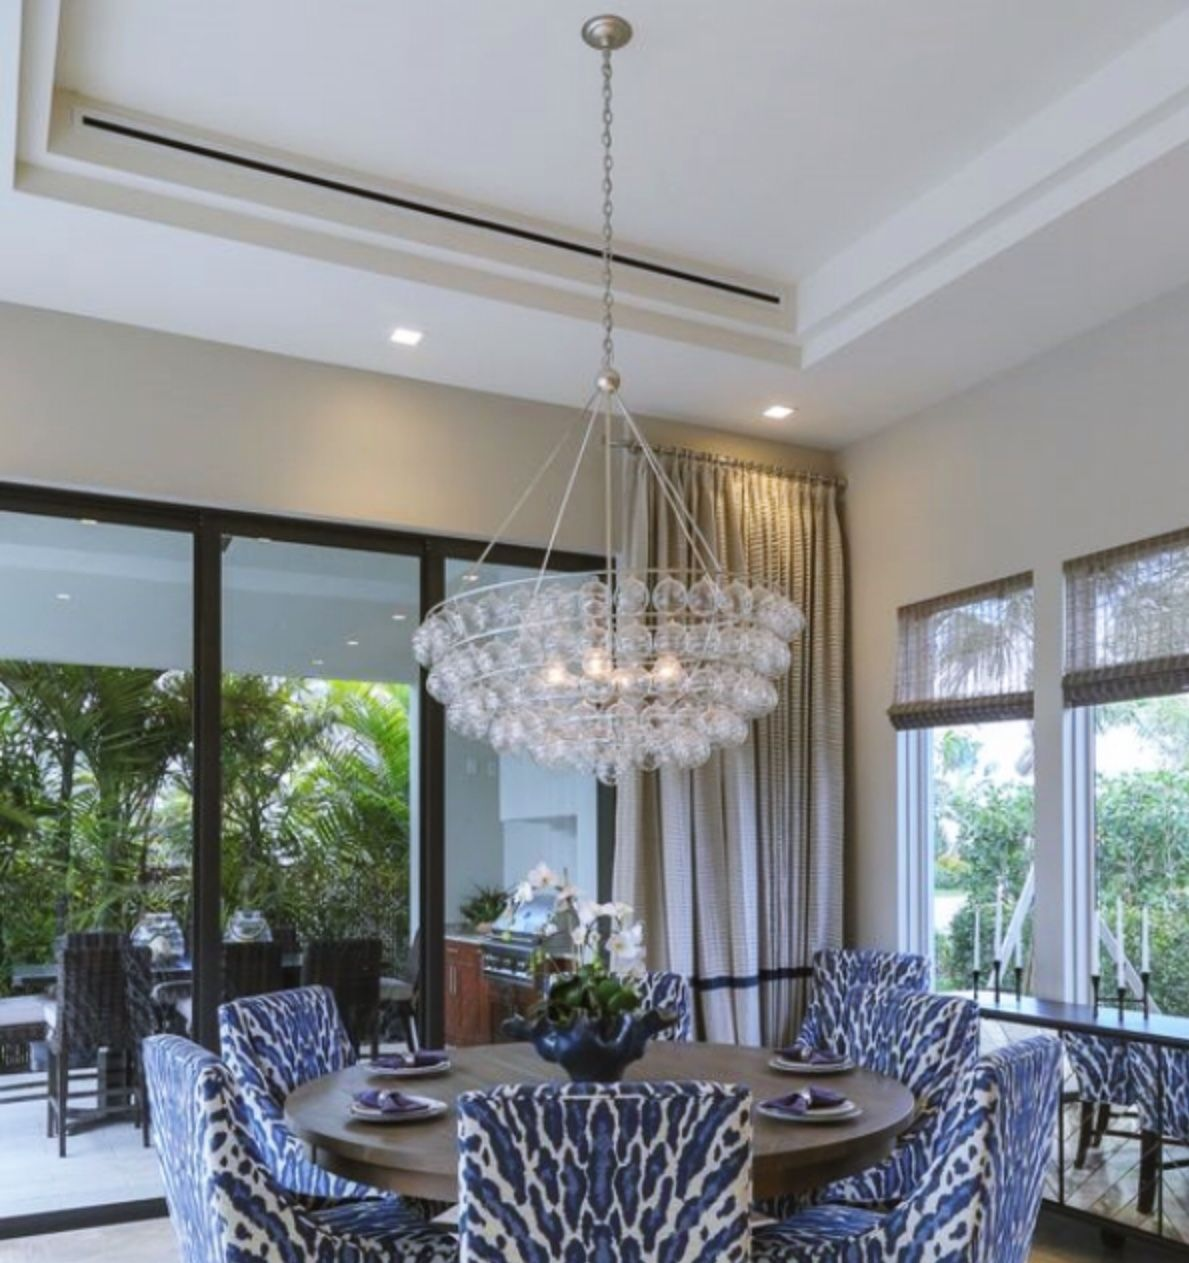 Pin By Asha Latha On Furniture Dining Room Design Luxury Dining